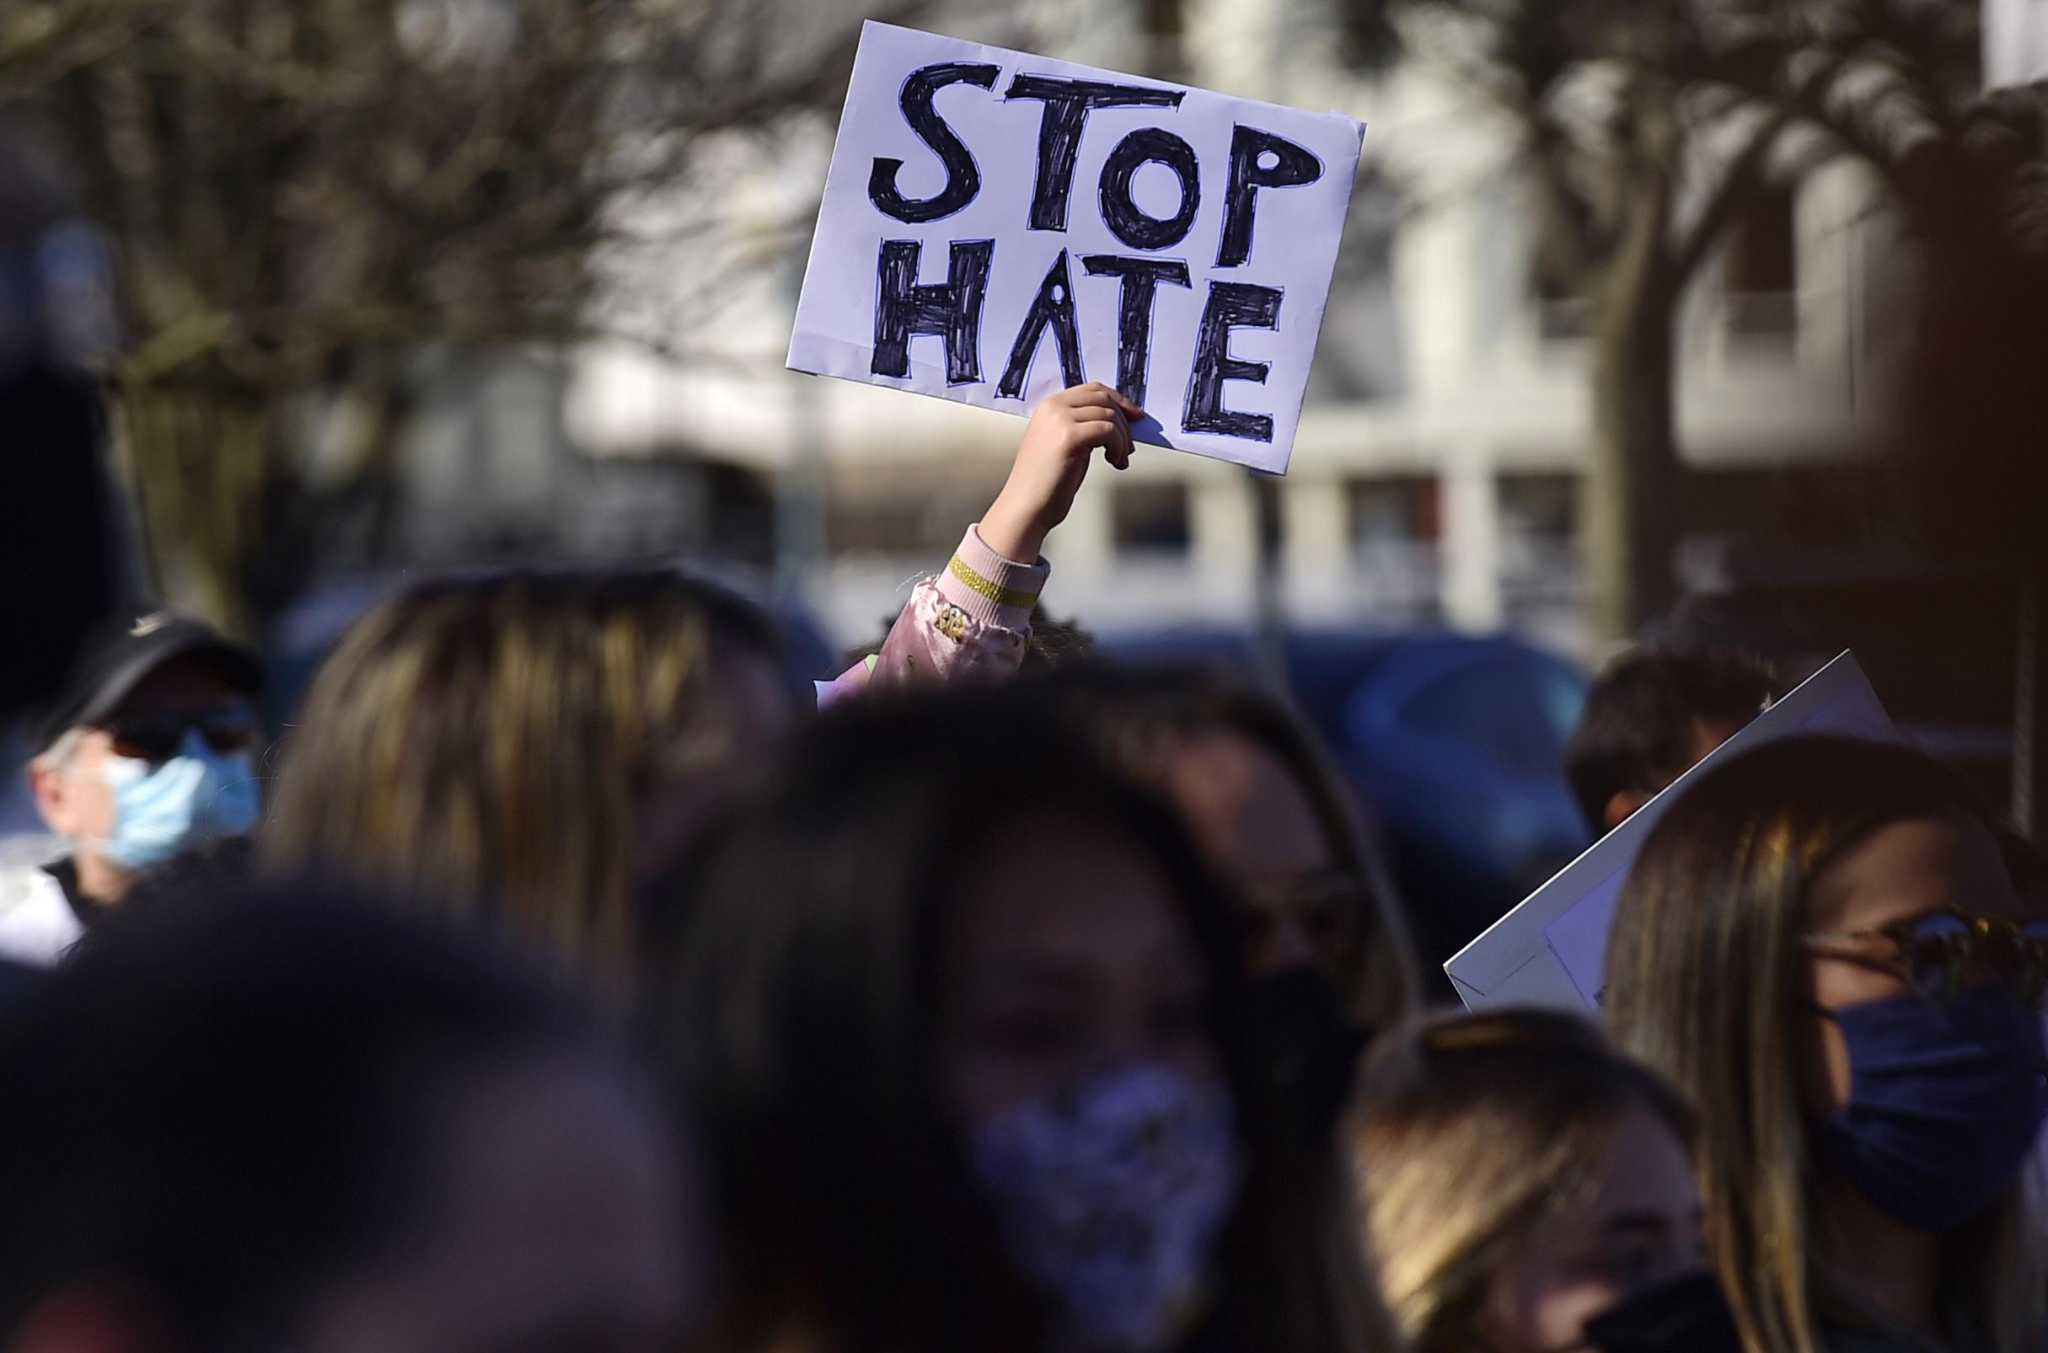 Experts: 'Turmoil and anxieties' cause surge in CT hate crimes